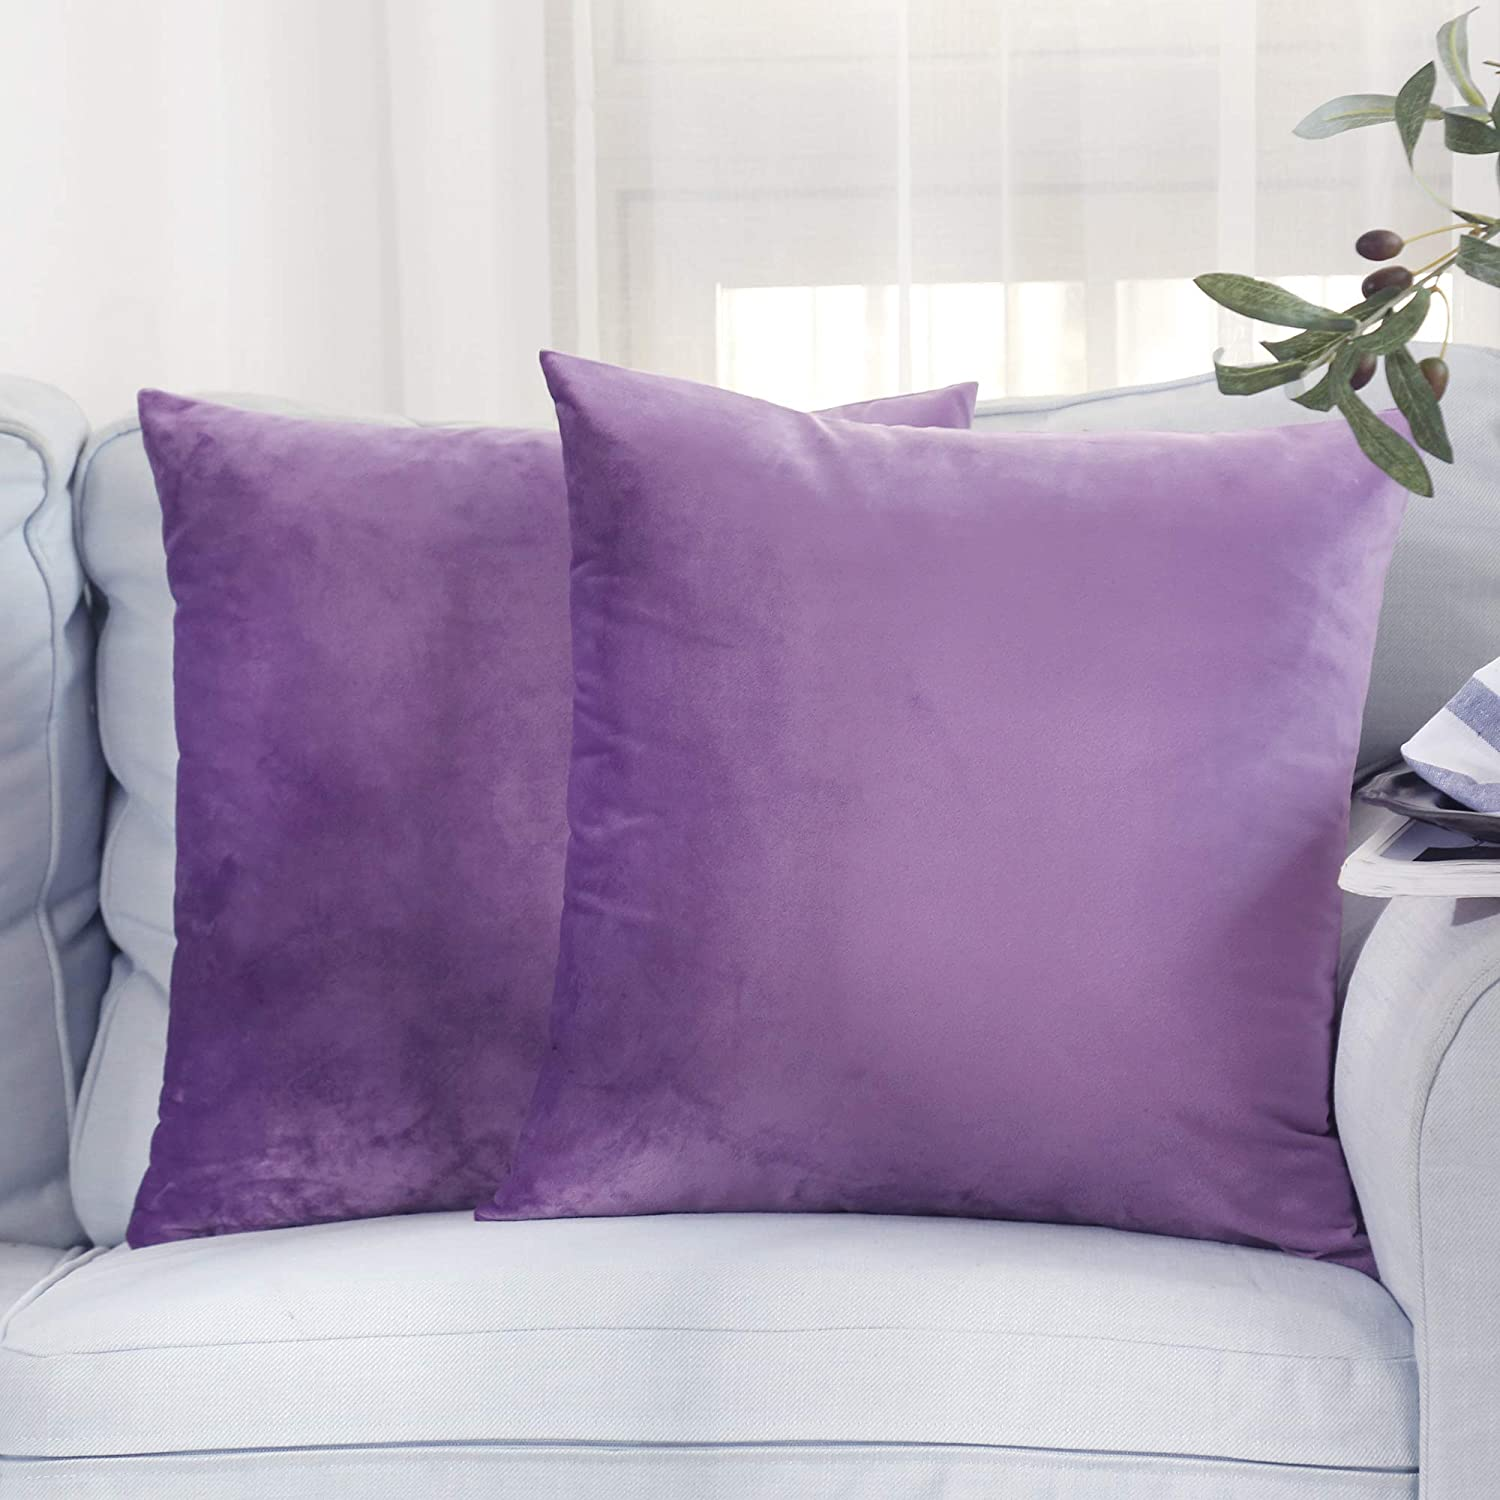 HUILIANG Pack of 2, Velvet Soft Soild Decorative Square Throw Pillow Covers Home Decor Design Set Cushion Case for Sofa Bedroom Car 18 x 18 Inch 45 x 45 cm (Purple)